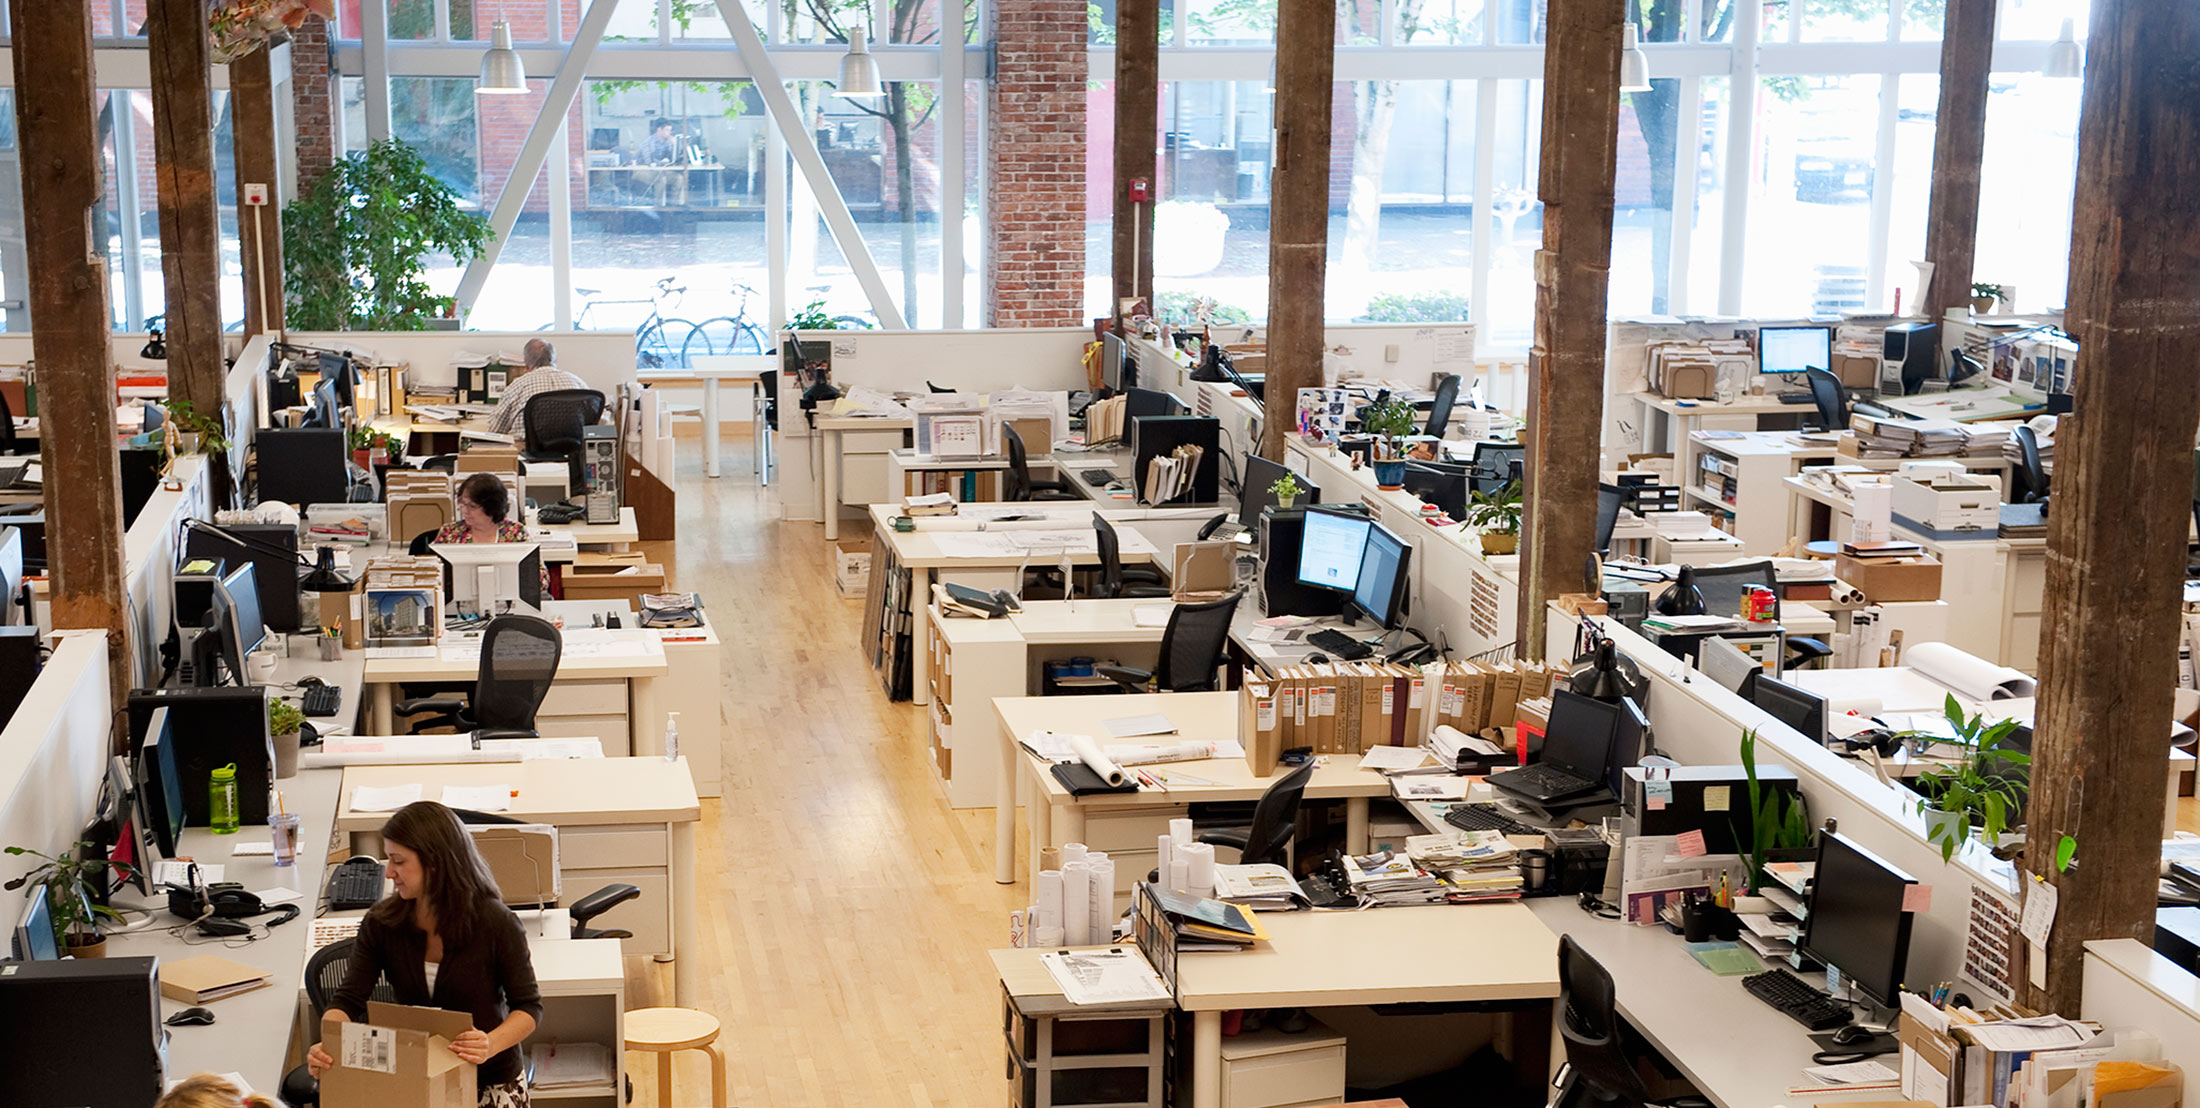 the ideal office floor plan according to science bloomberg